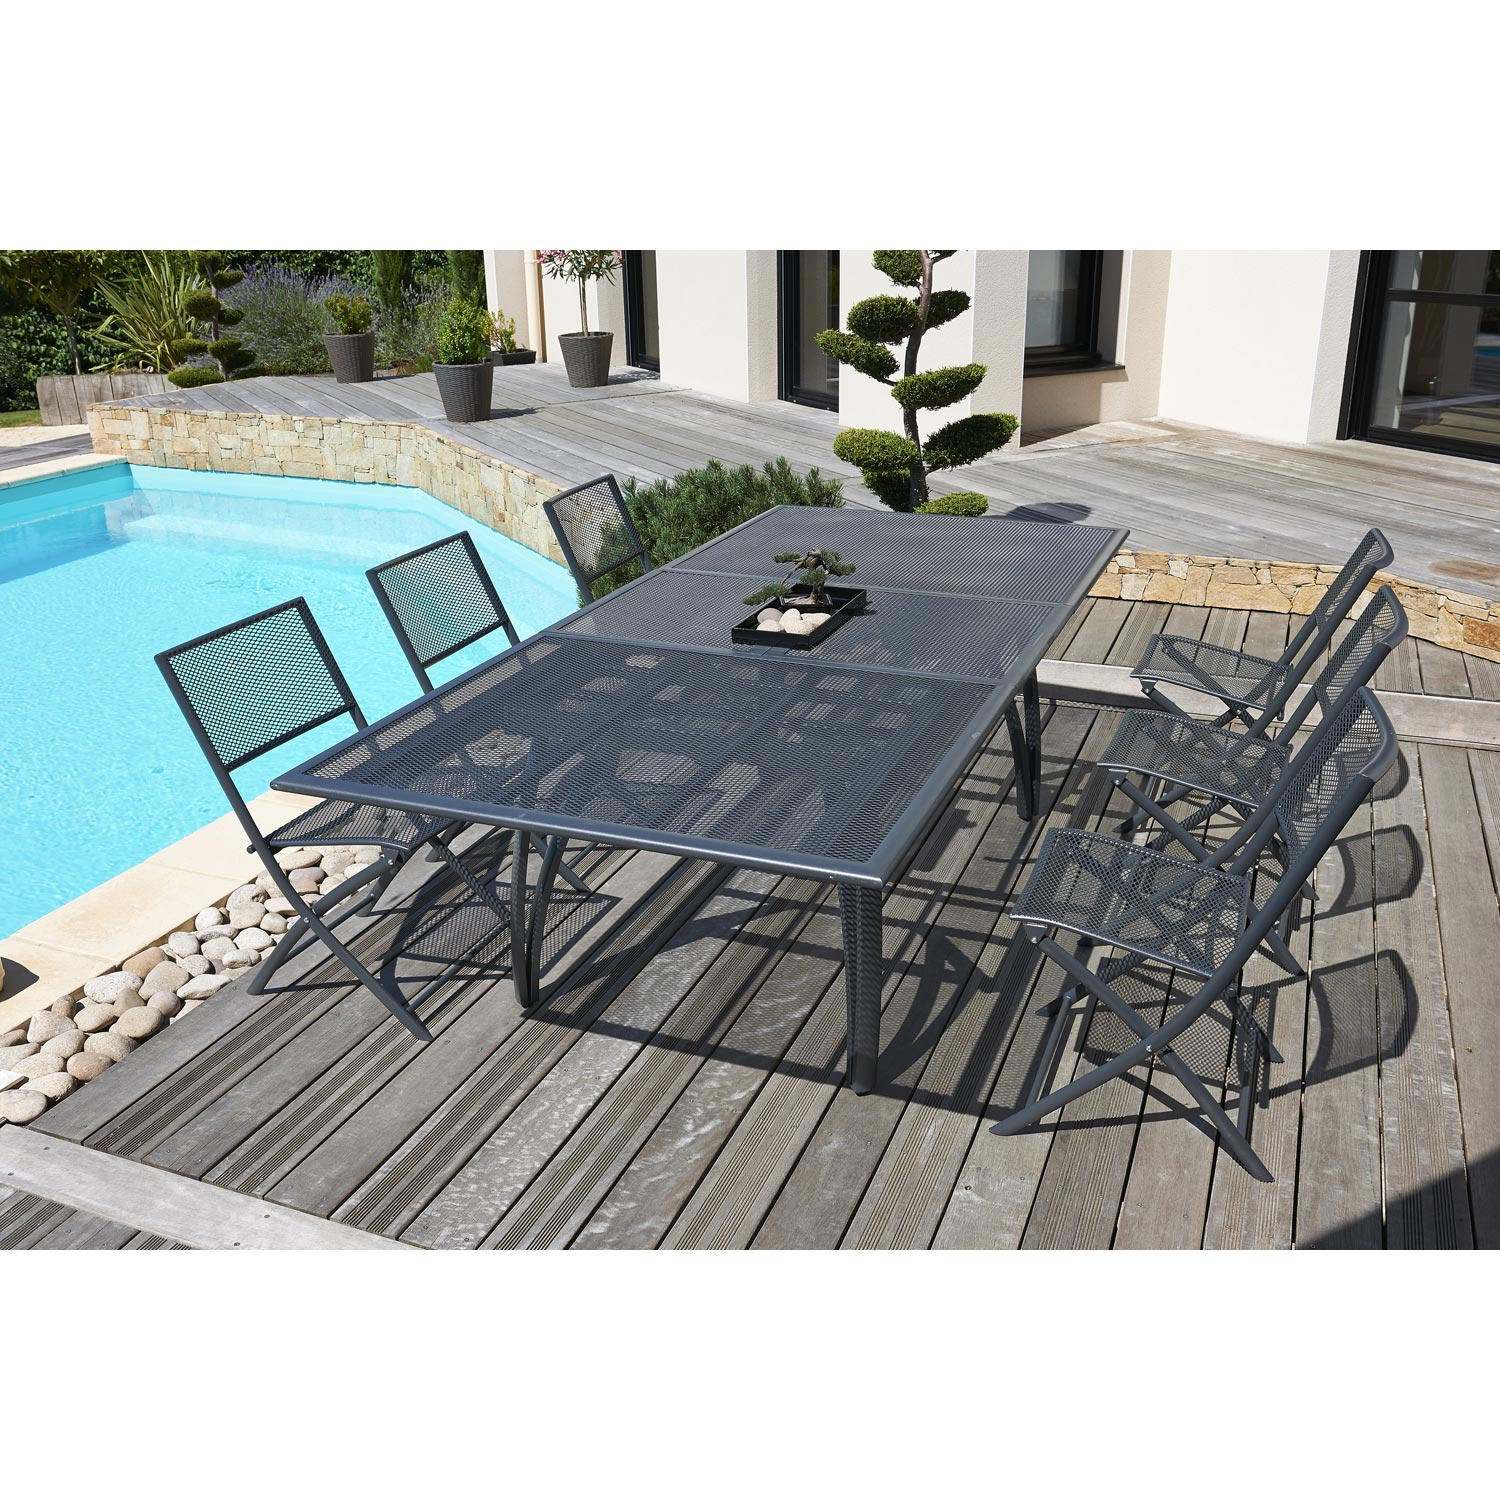 salon de jardin gris anthracite 6 personnes leroy merlin. Black Bedroom Furniture Sets. Home Design Ideas